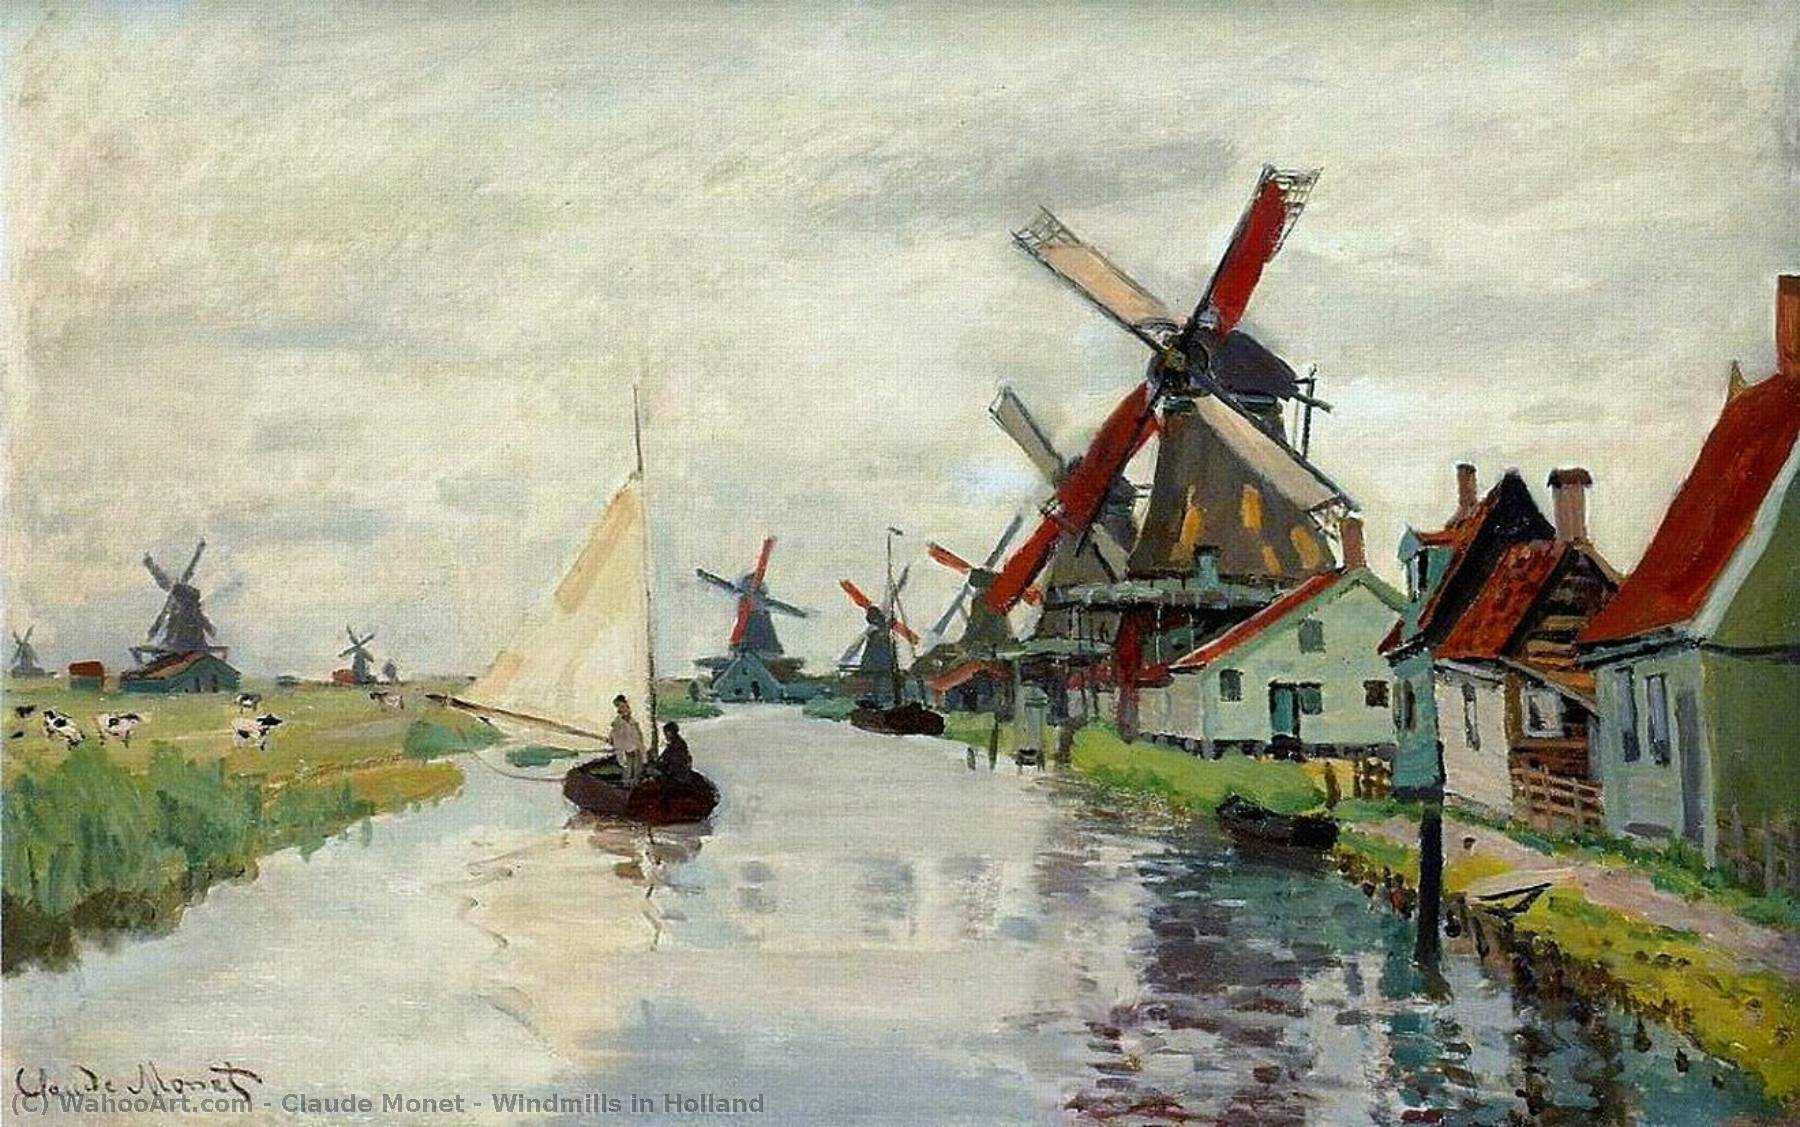 Windmills in Holland, 1871 by Claude Monet (1840-1926, France)